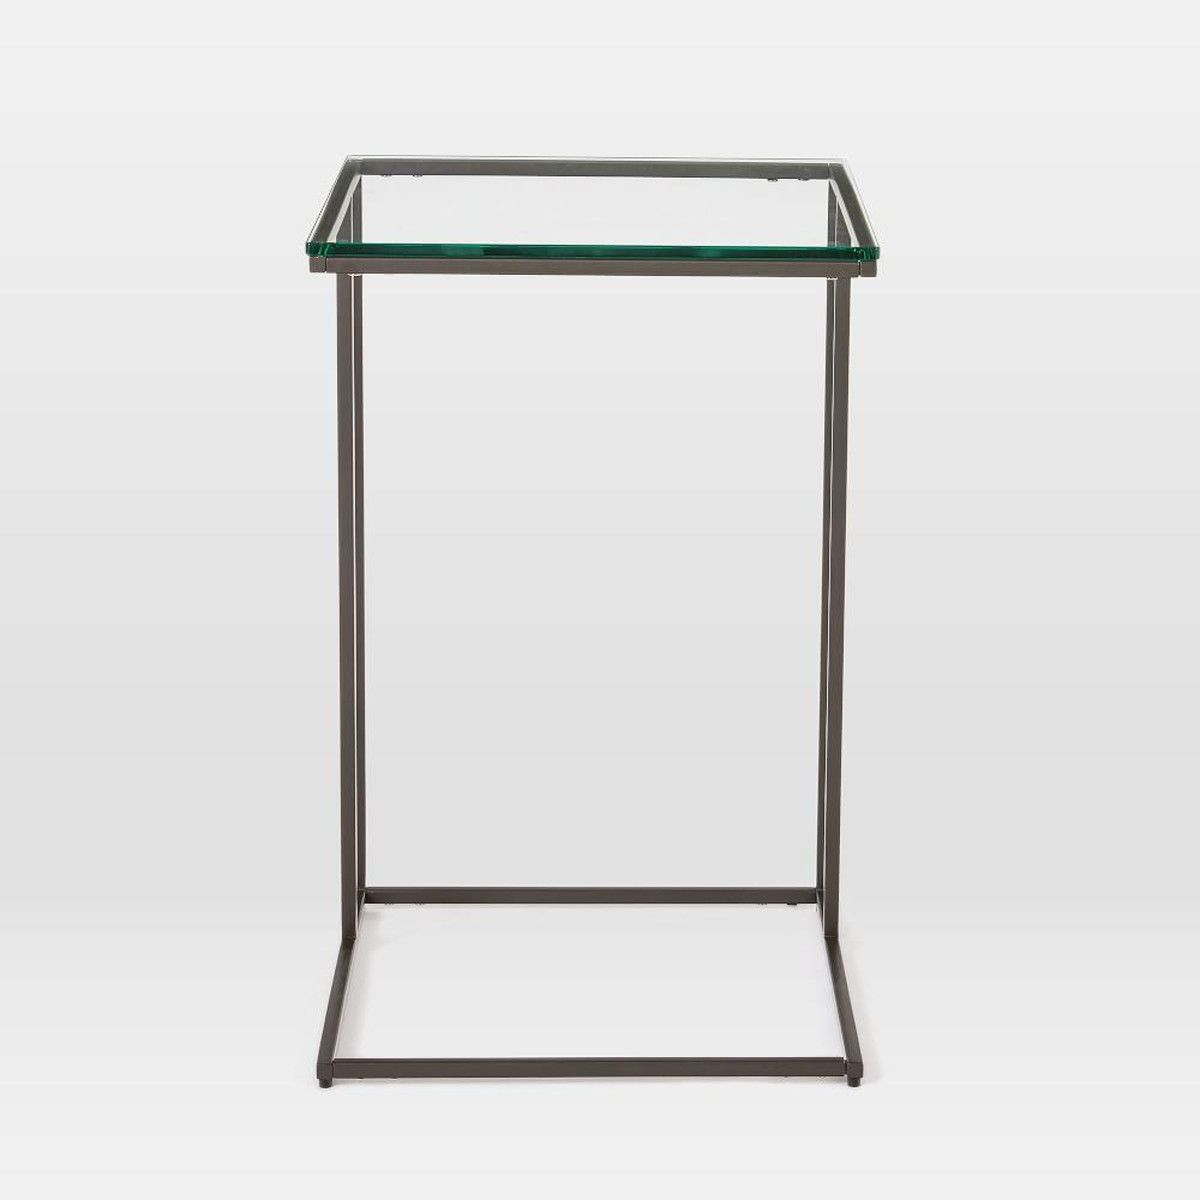 Streamline C Side Table – Glass | Living Room | Pinterest | Glass Throughout Elke Glass Console Tables With Brass Base (View 6 of 30)